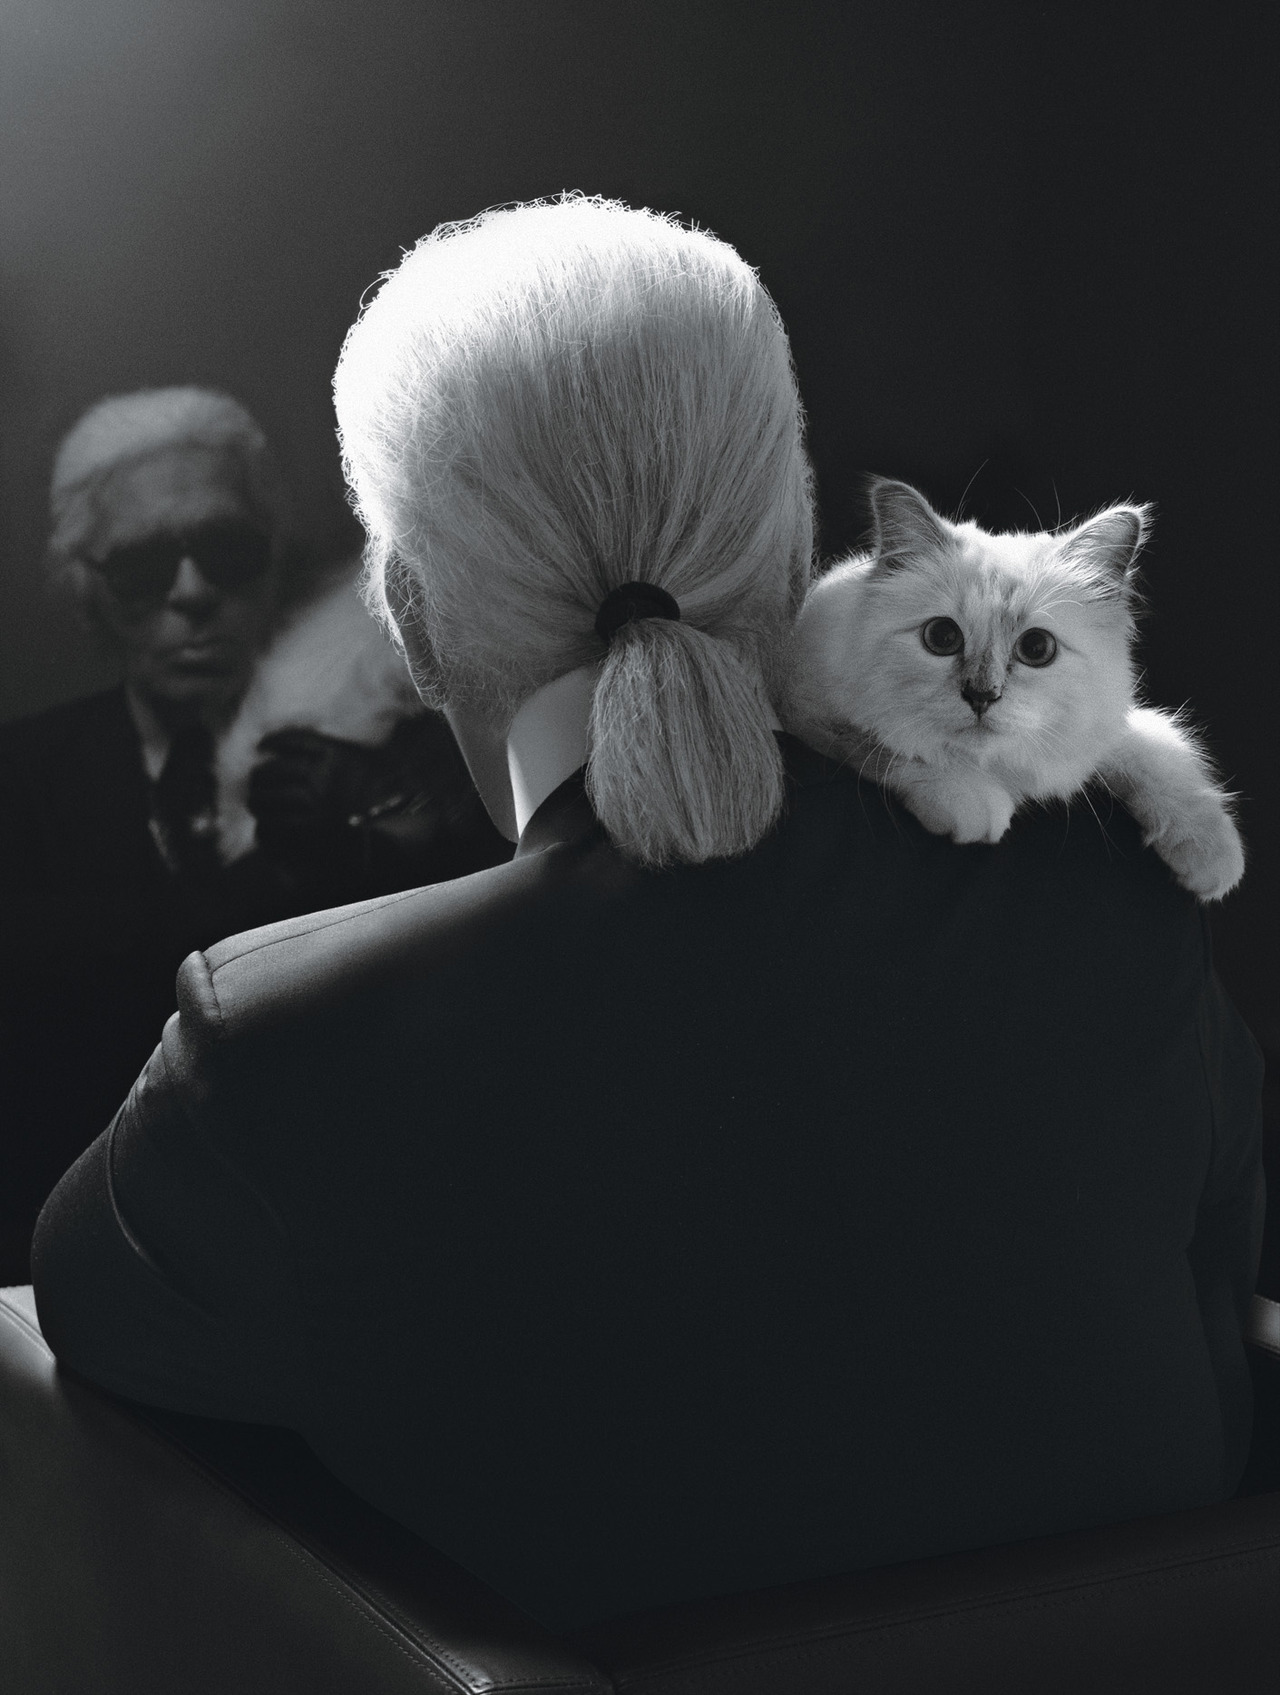 Photo by Karl Lagerfeld This is all we need in life. K?Thanks.Bye.